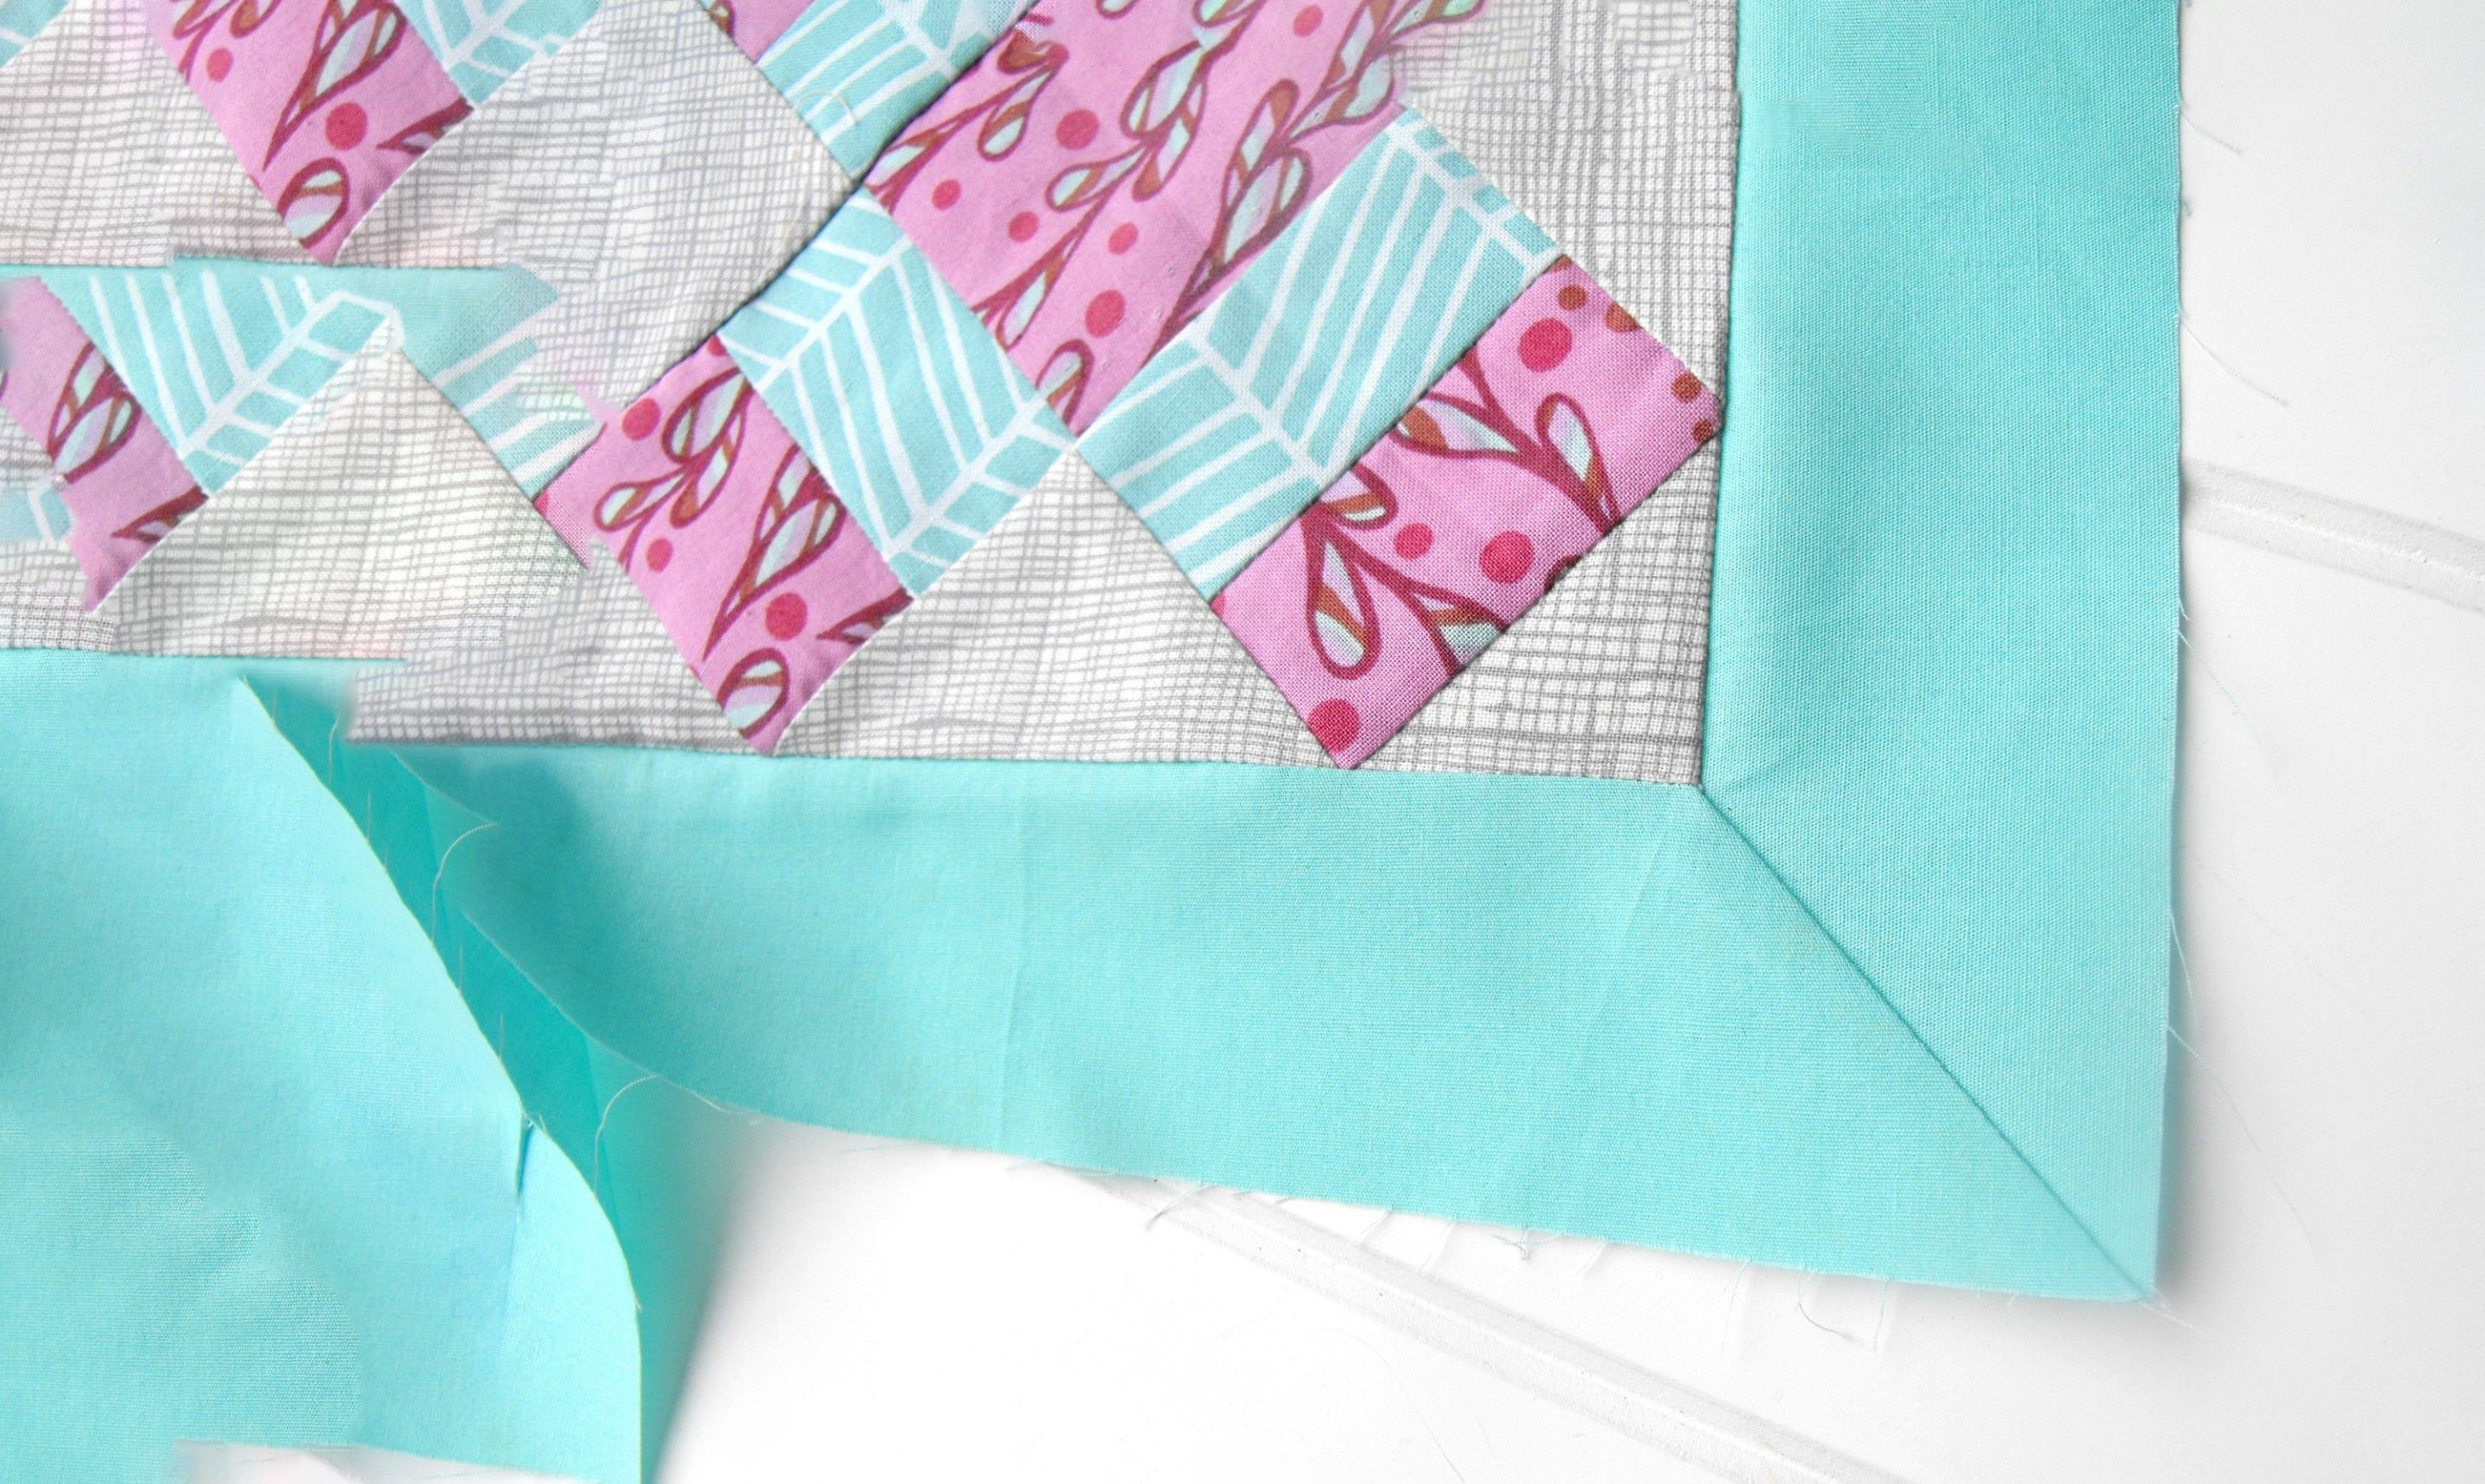 Mitered Corners On Quilt Borders Sewing Tutorial Quilts Quilt Corners Sewing Mitered Corners